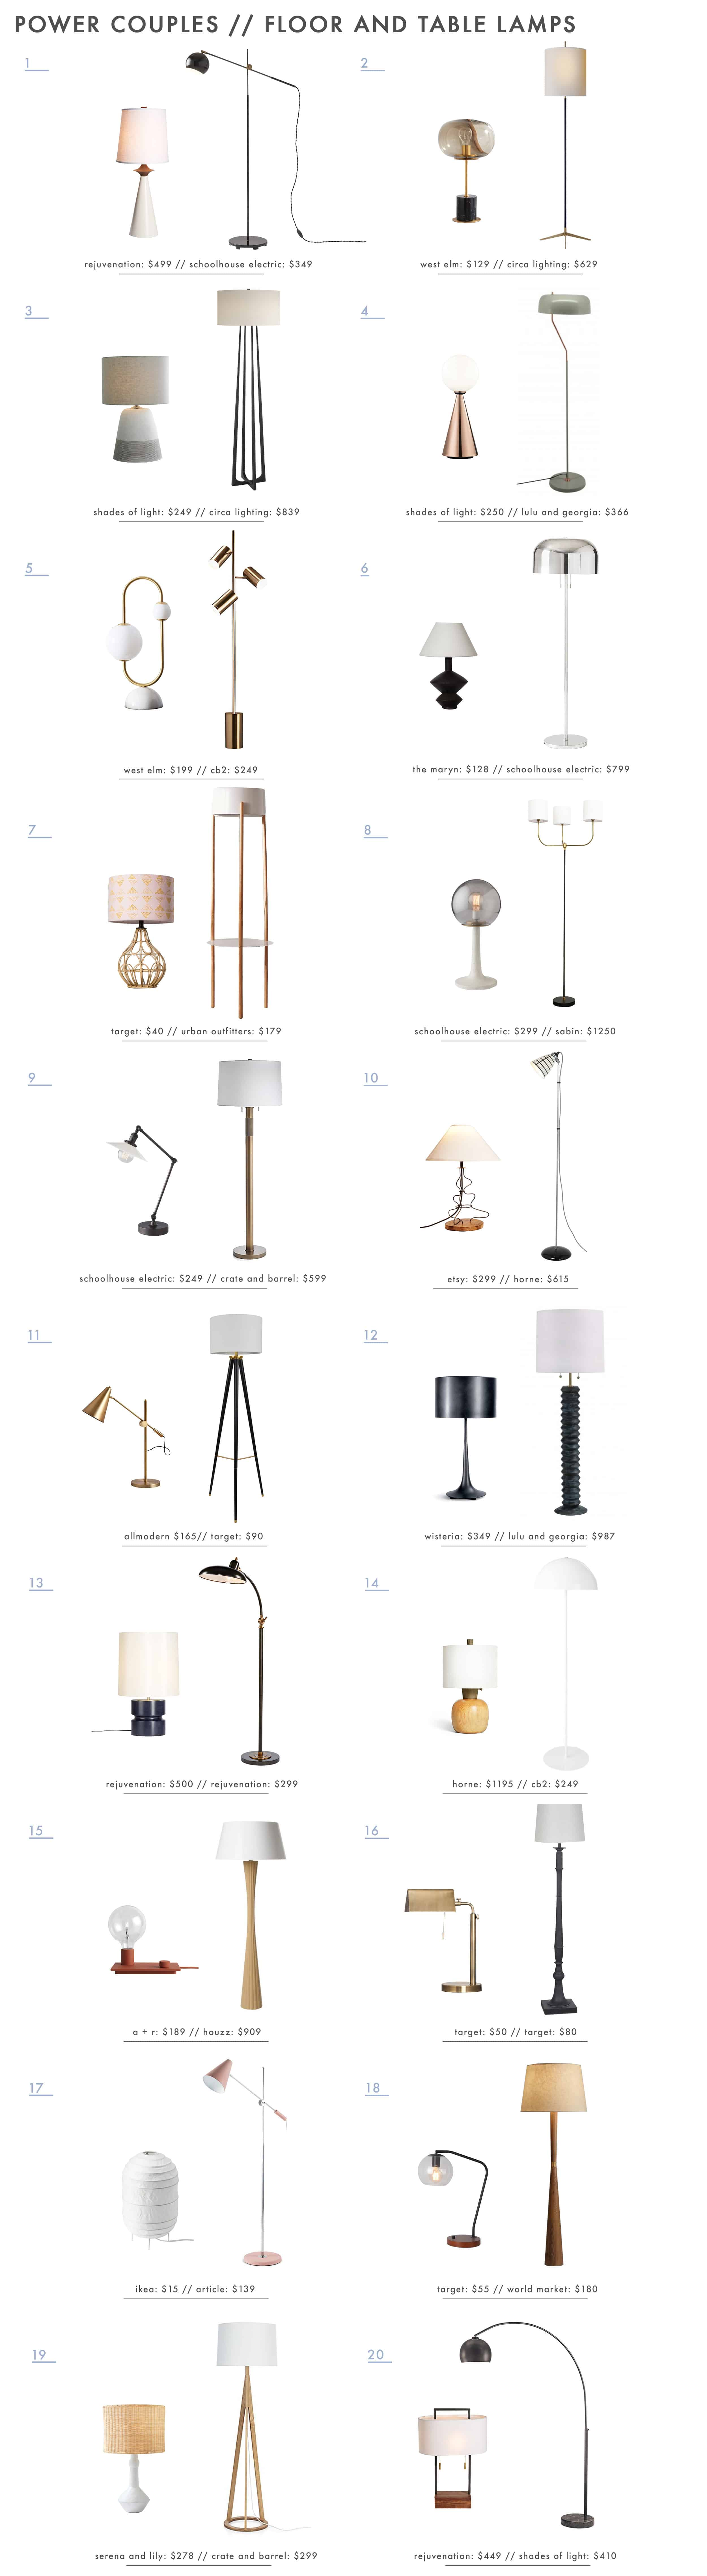 20 Floor Table Lamp Combinations For Your Home That Work Why